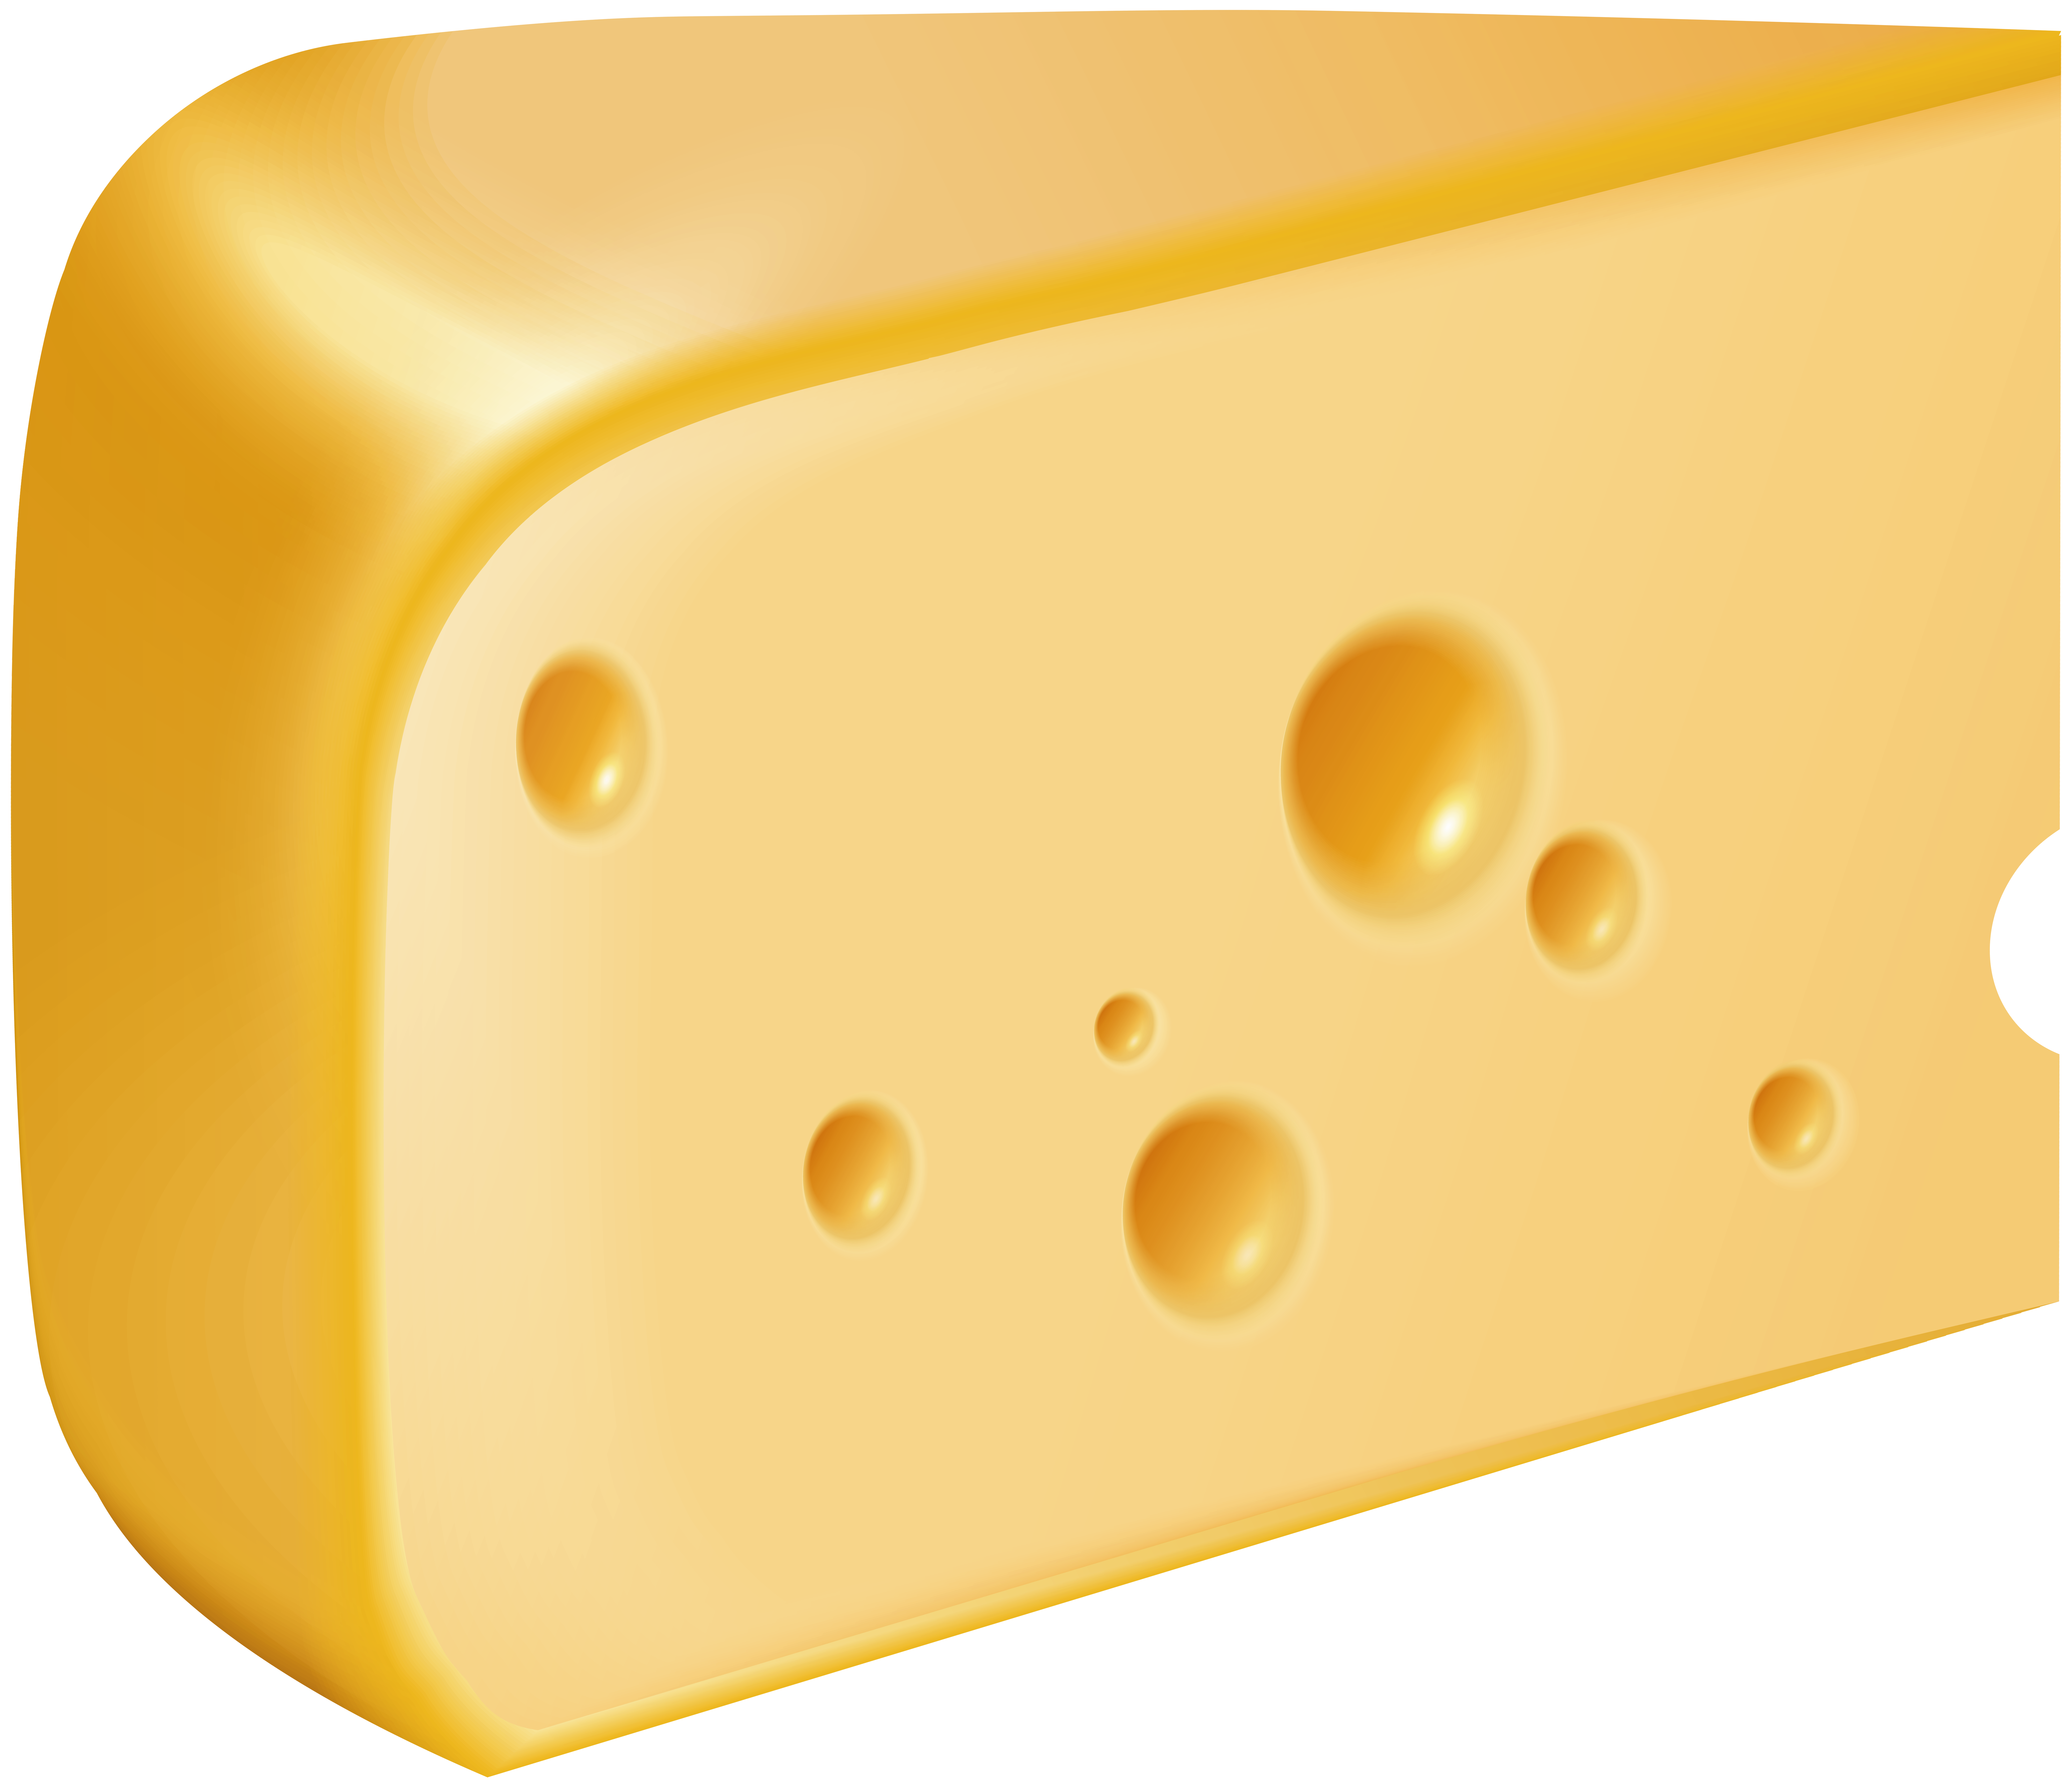 Of png clip art. Cheese clipart piece cheese